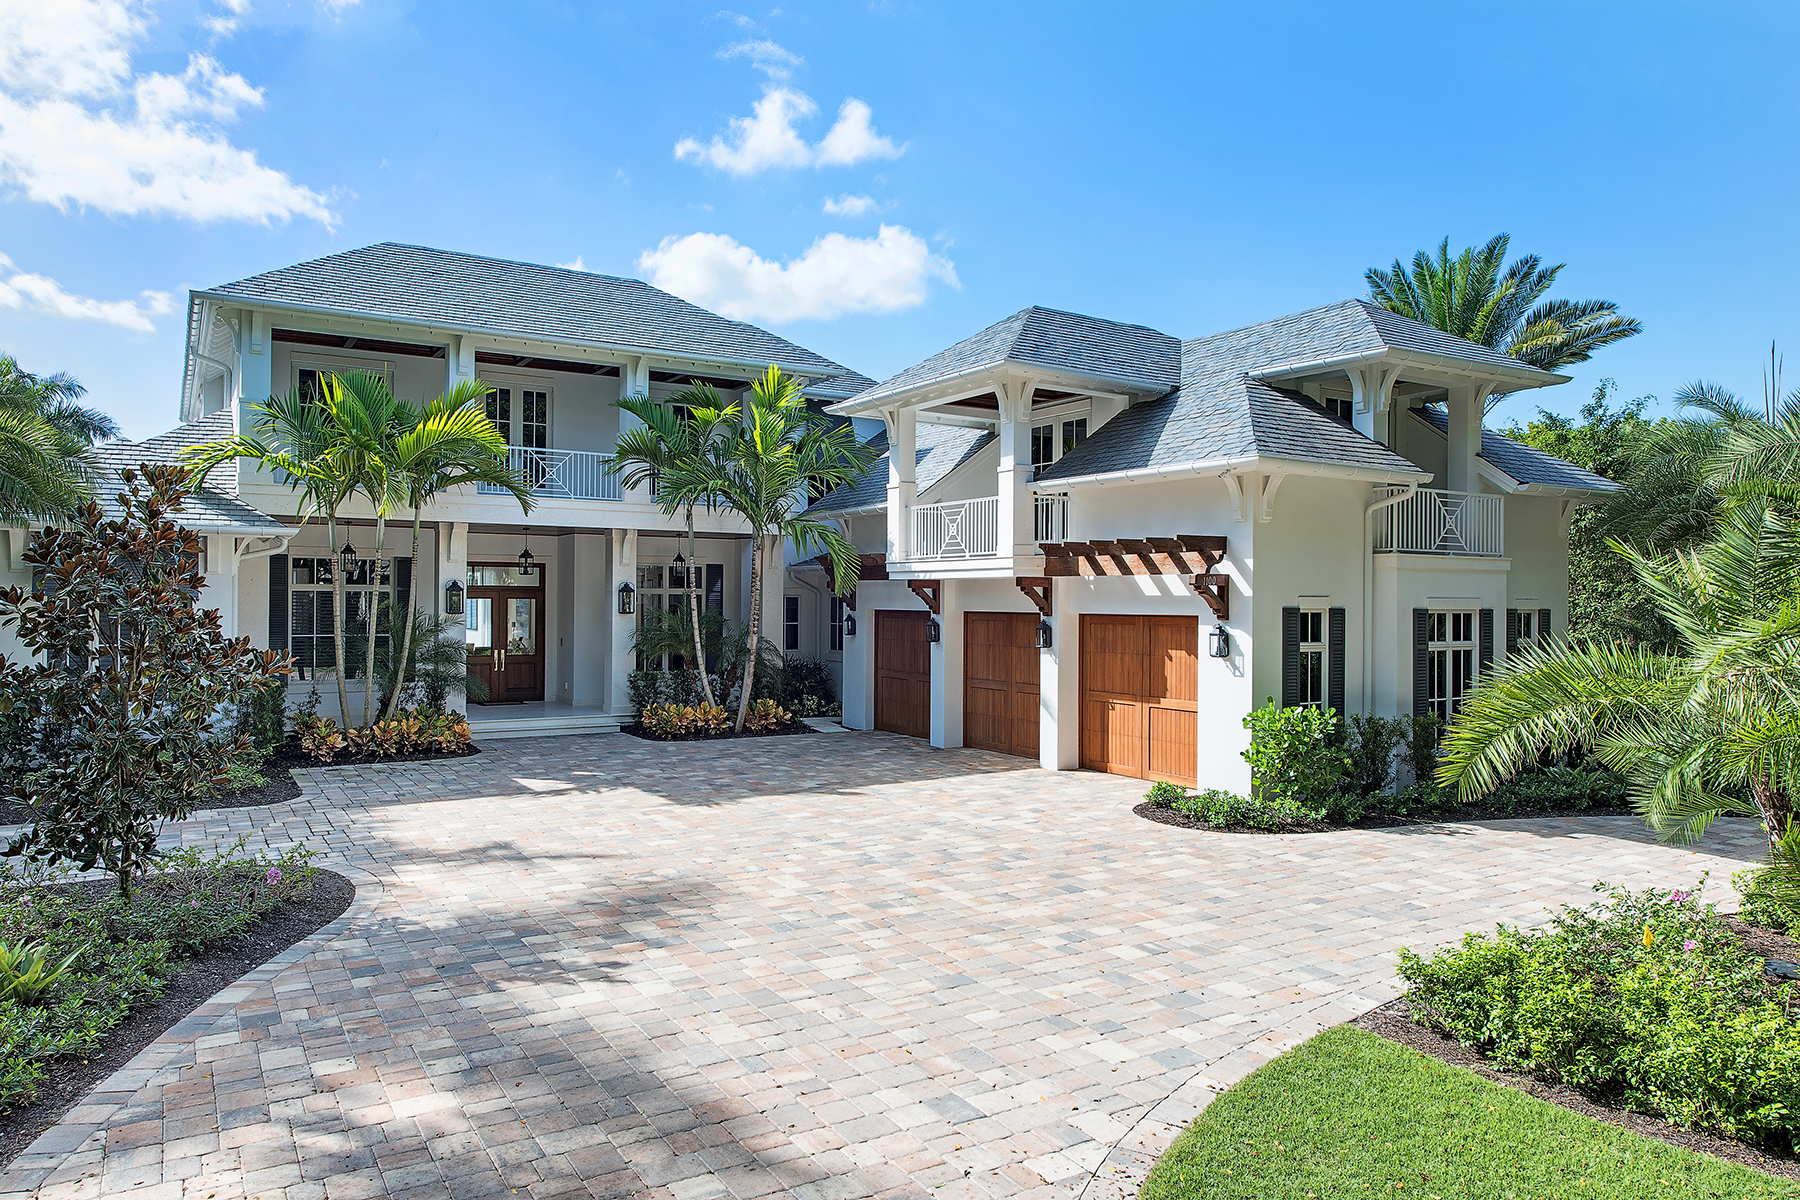 Single Family Home for Sale at PORT ROYAL 1100 Galleon Dr Port Royal, Naples, Florida, 34102 United States